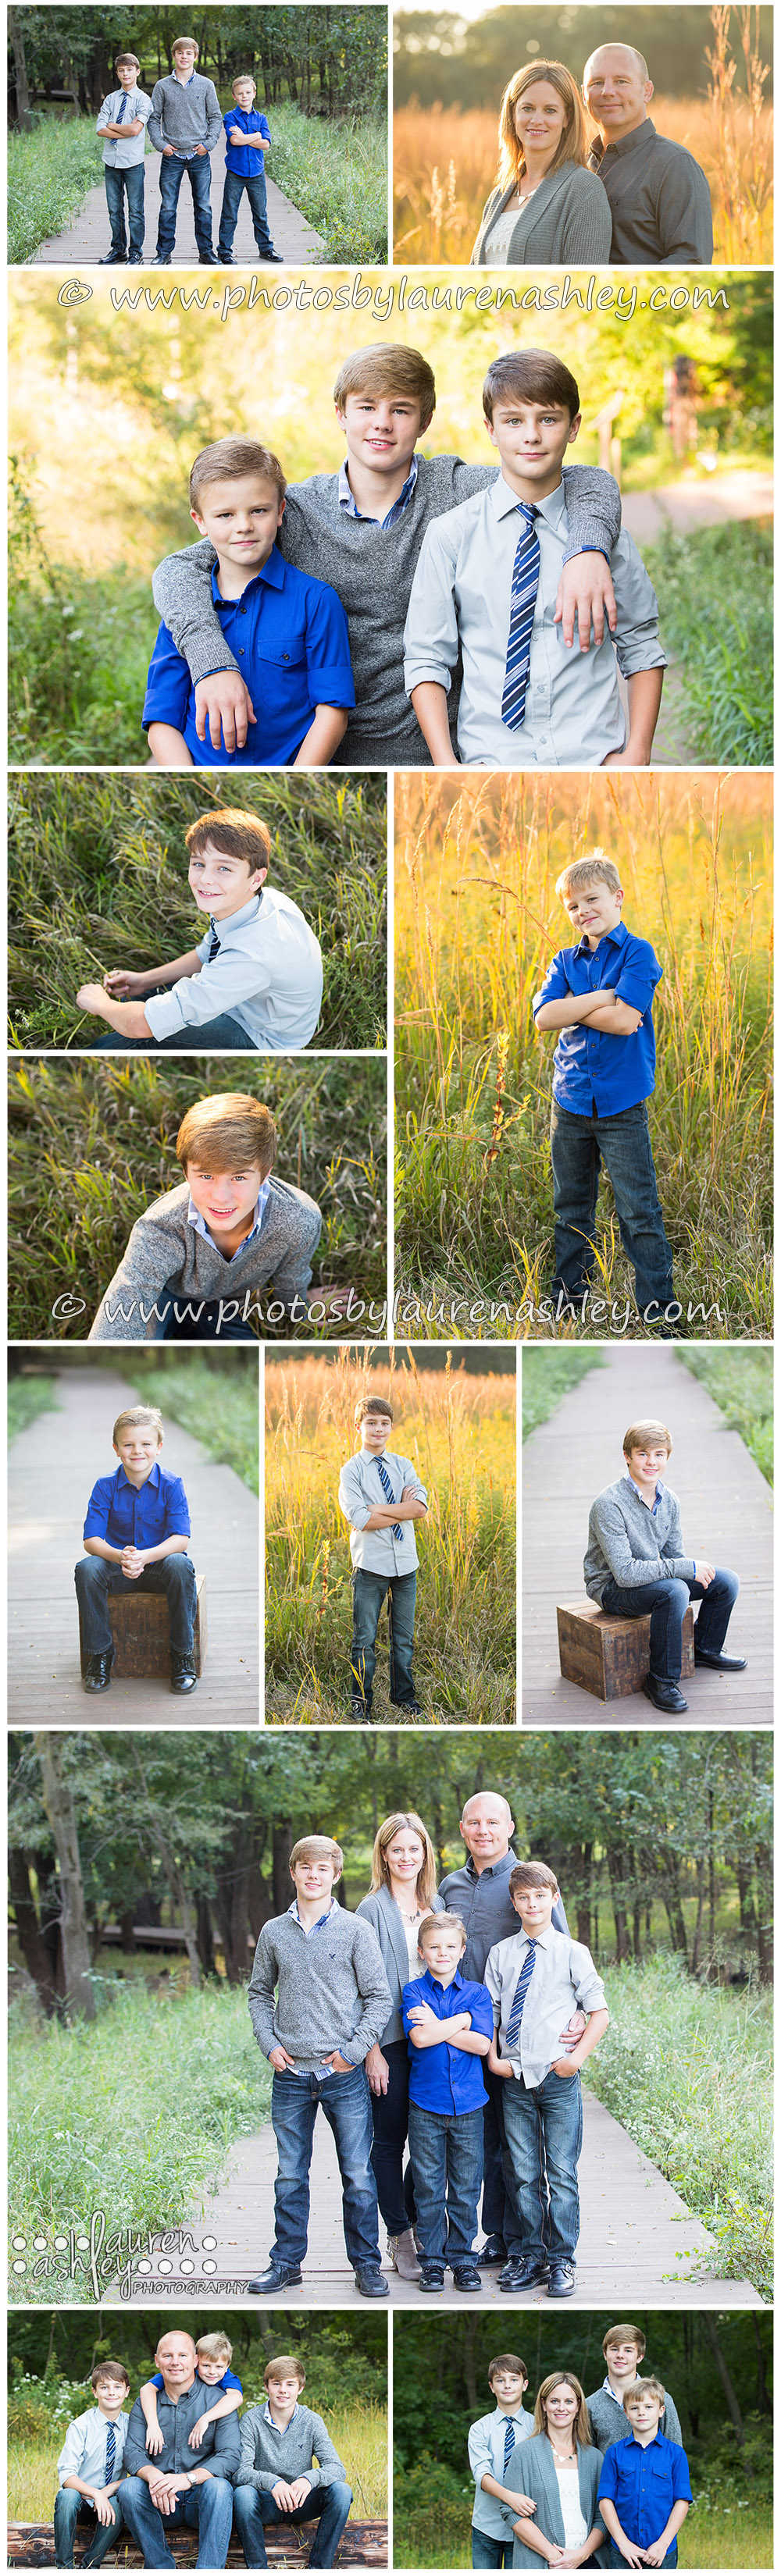 Family Photography with Lauren Ashley Photography at Indian Creek Nature Center in Cedar Rapids, IA